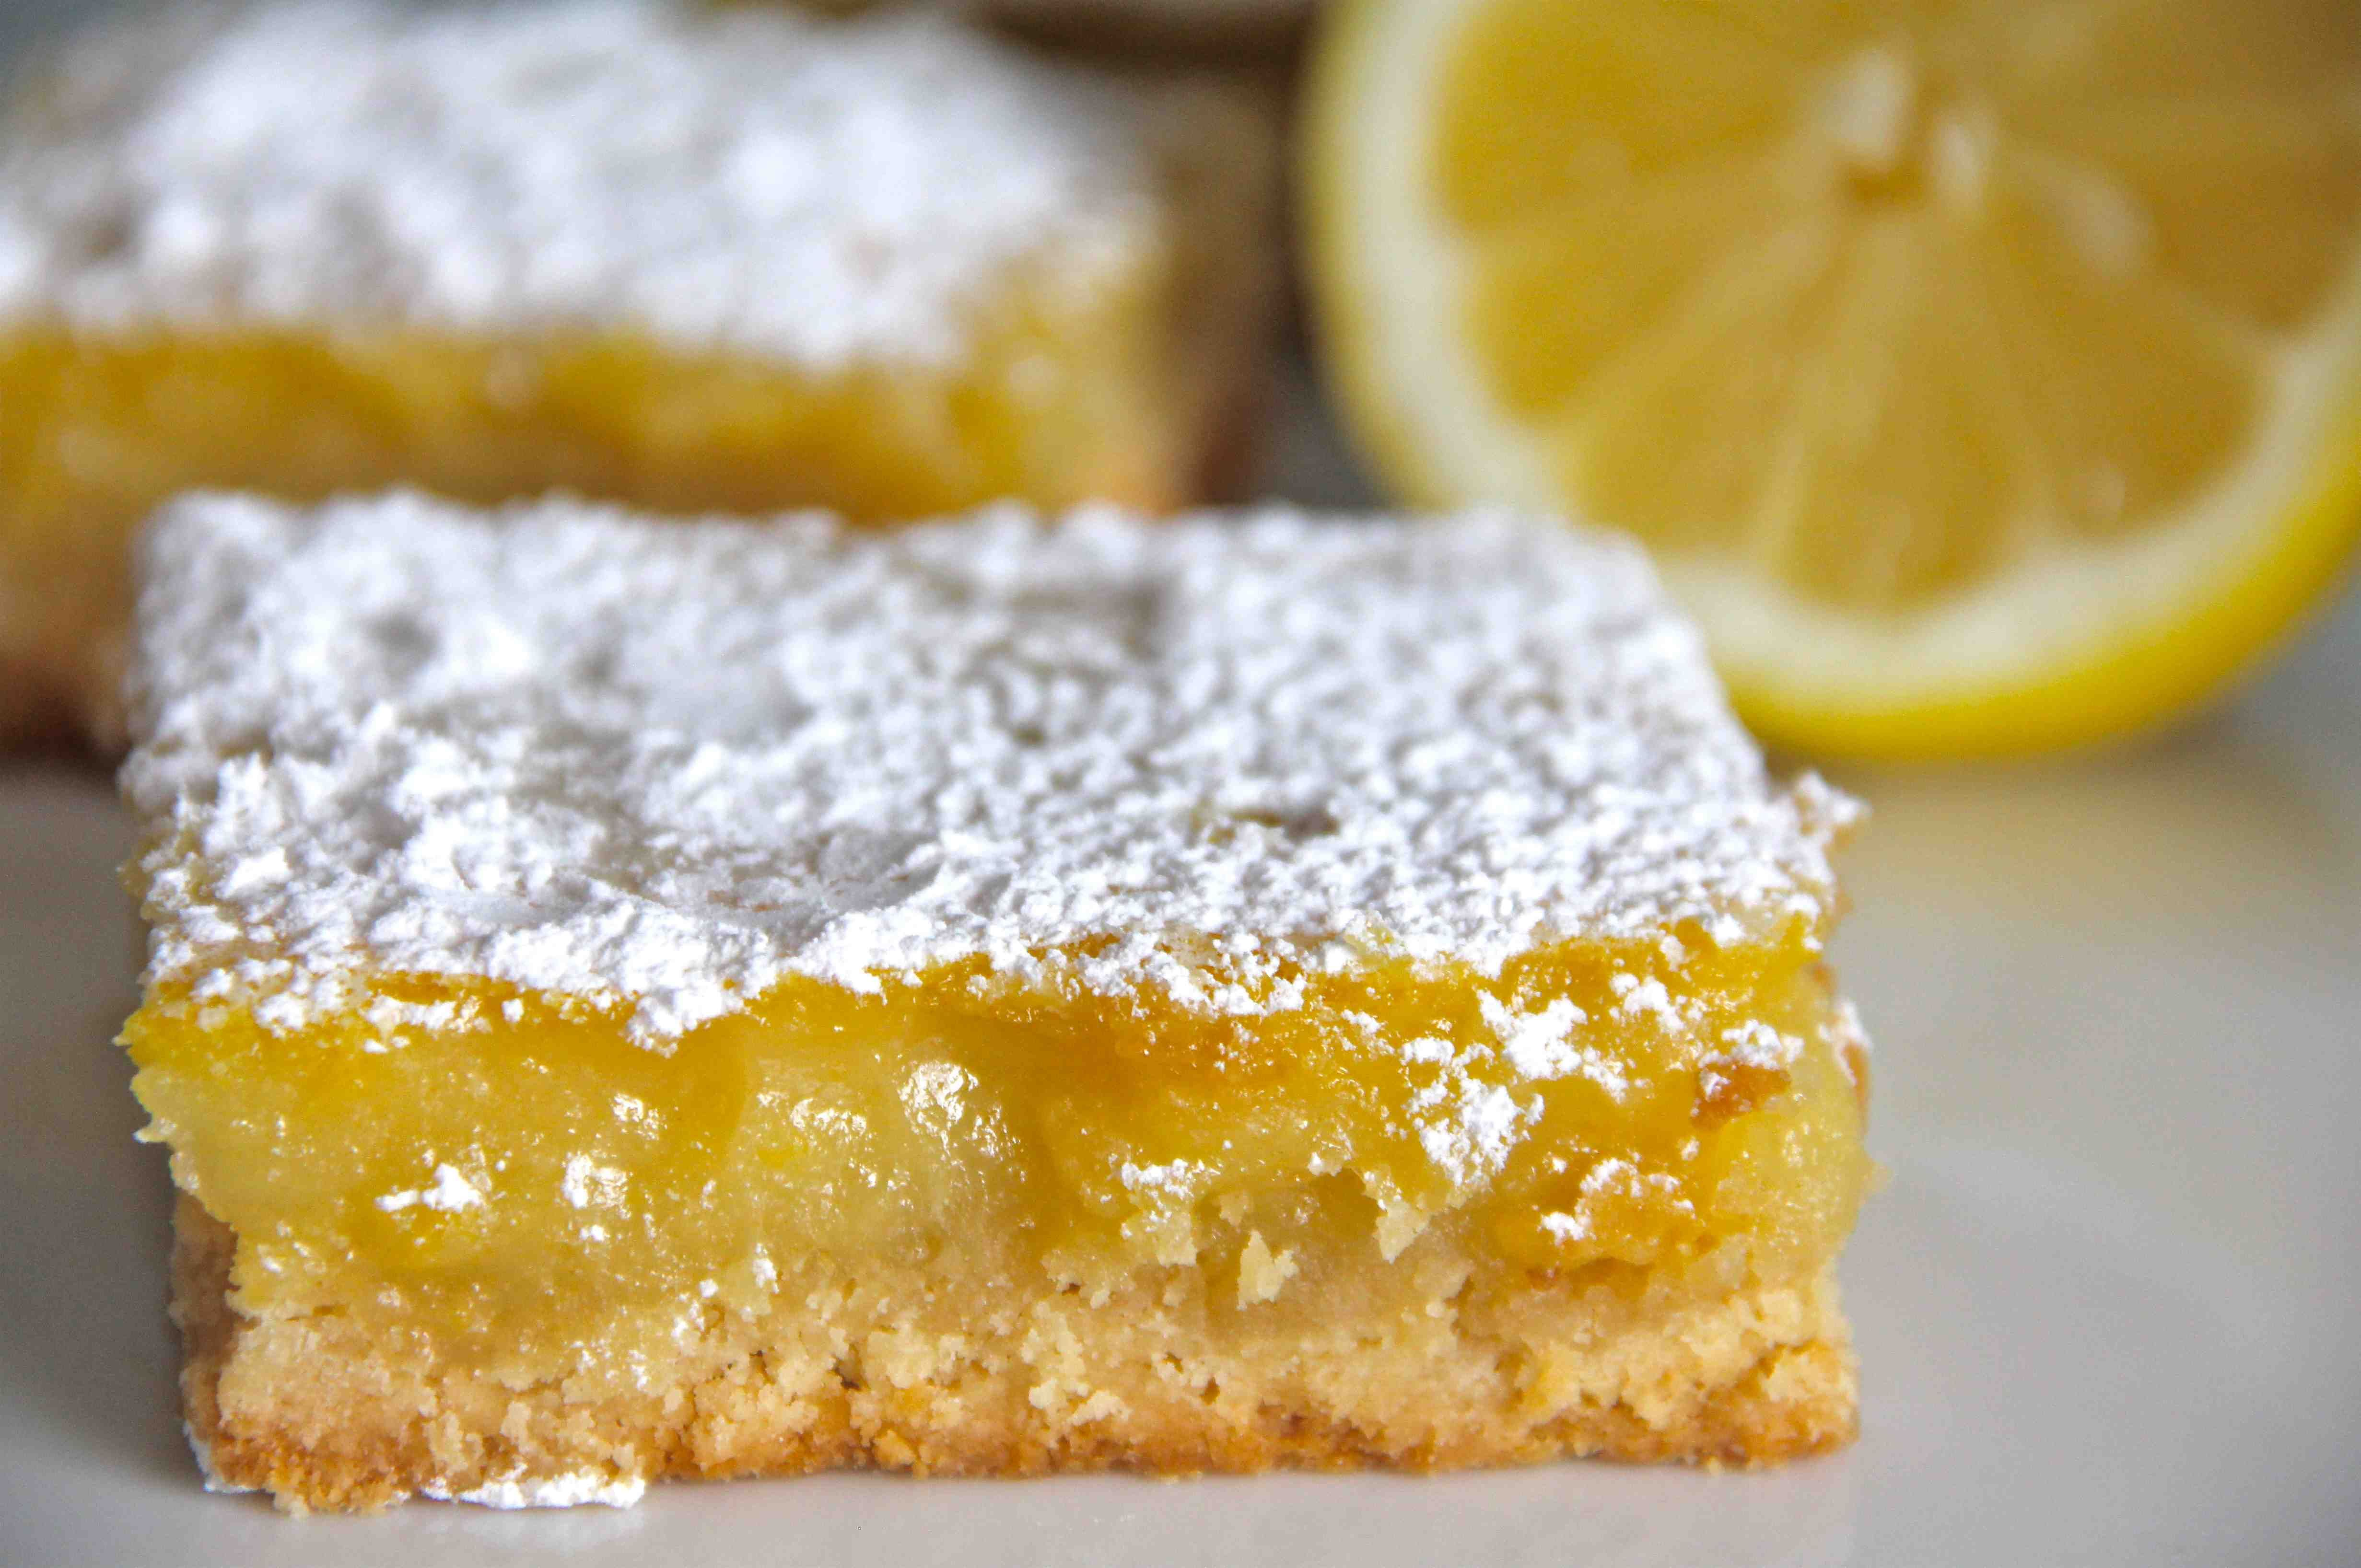 Lemon Bars | Recipe | Ree drummond and Pioneer woman